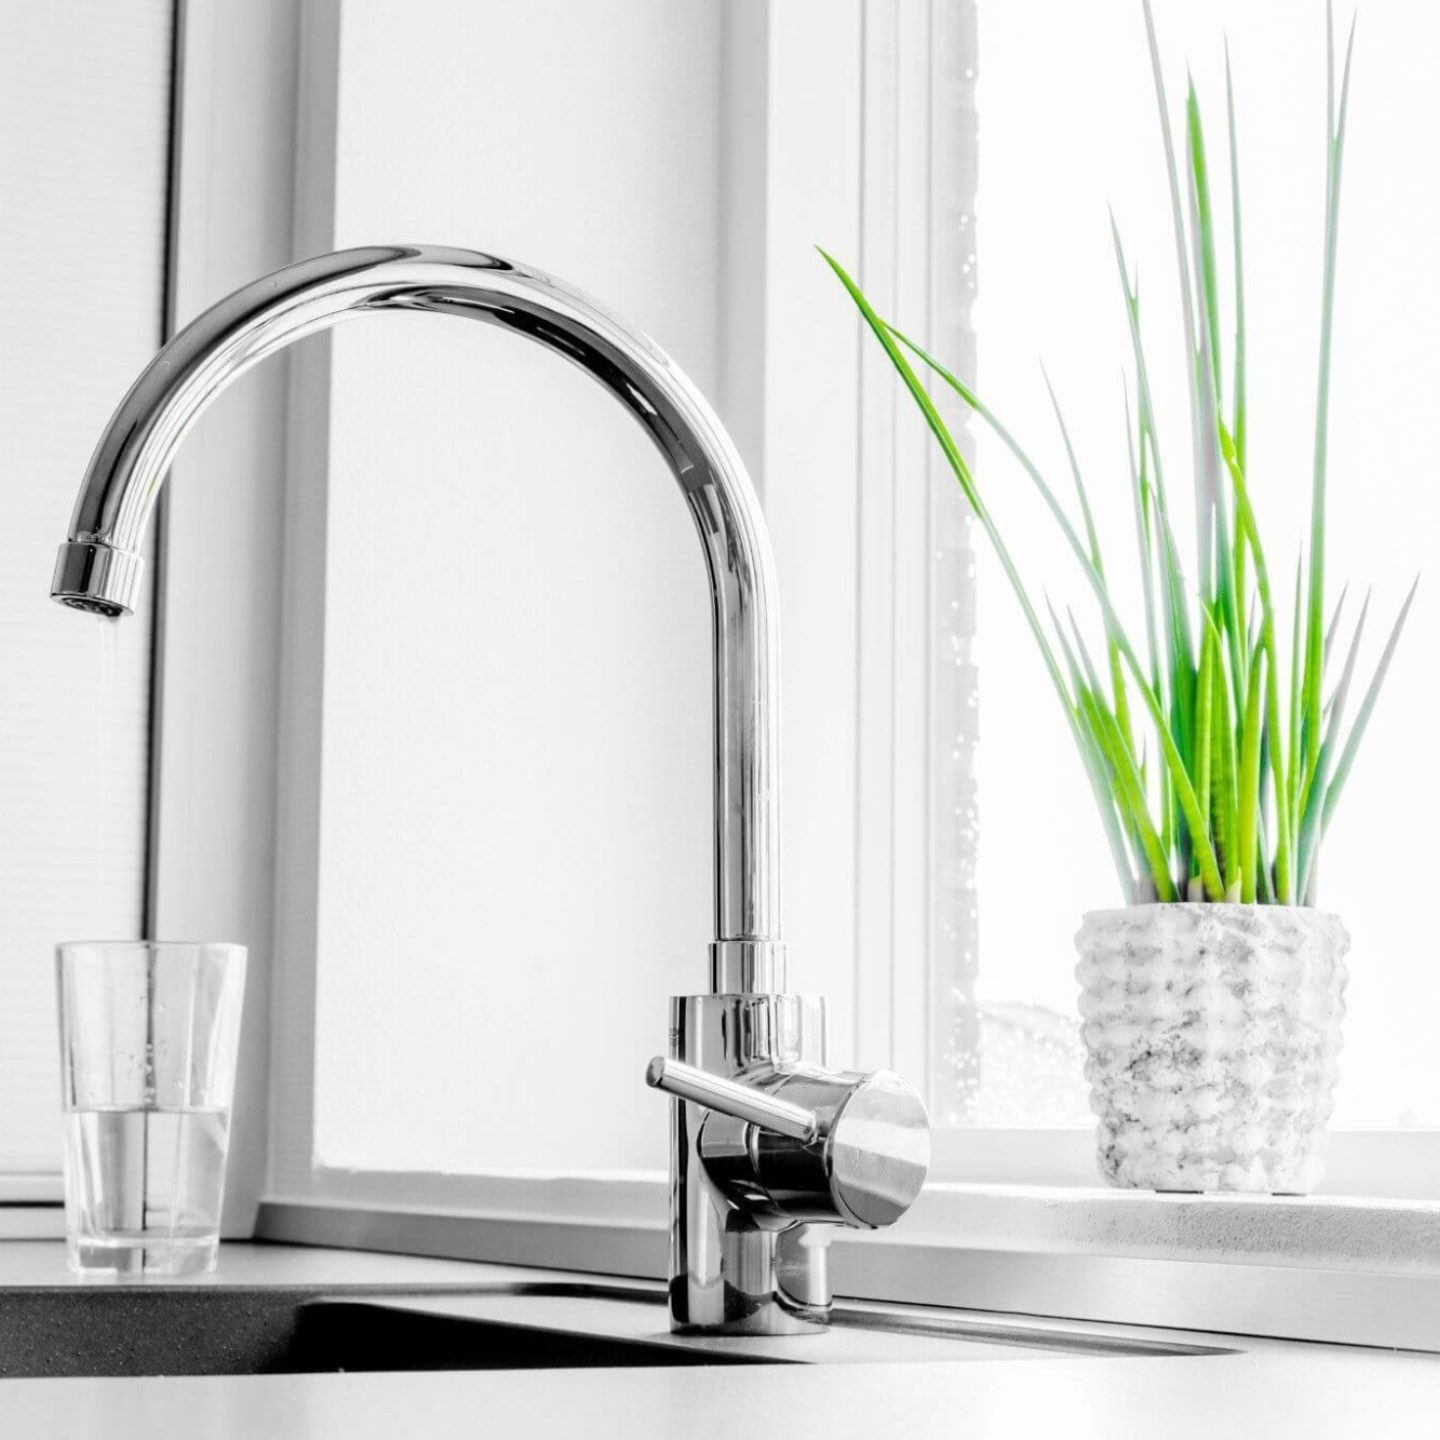 Kitchen faucet water cup and plant